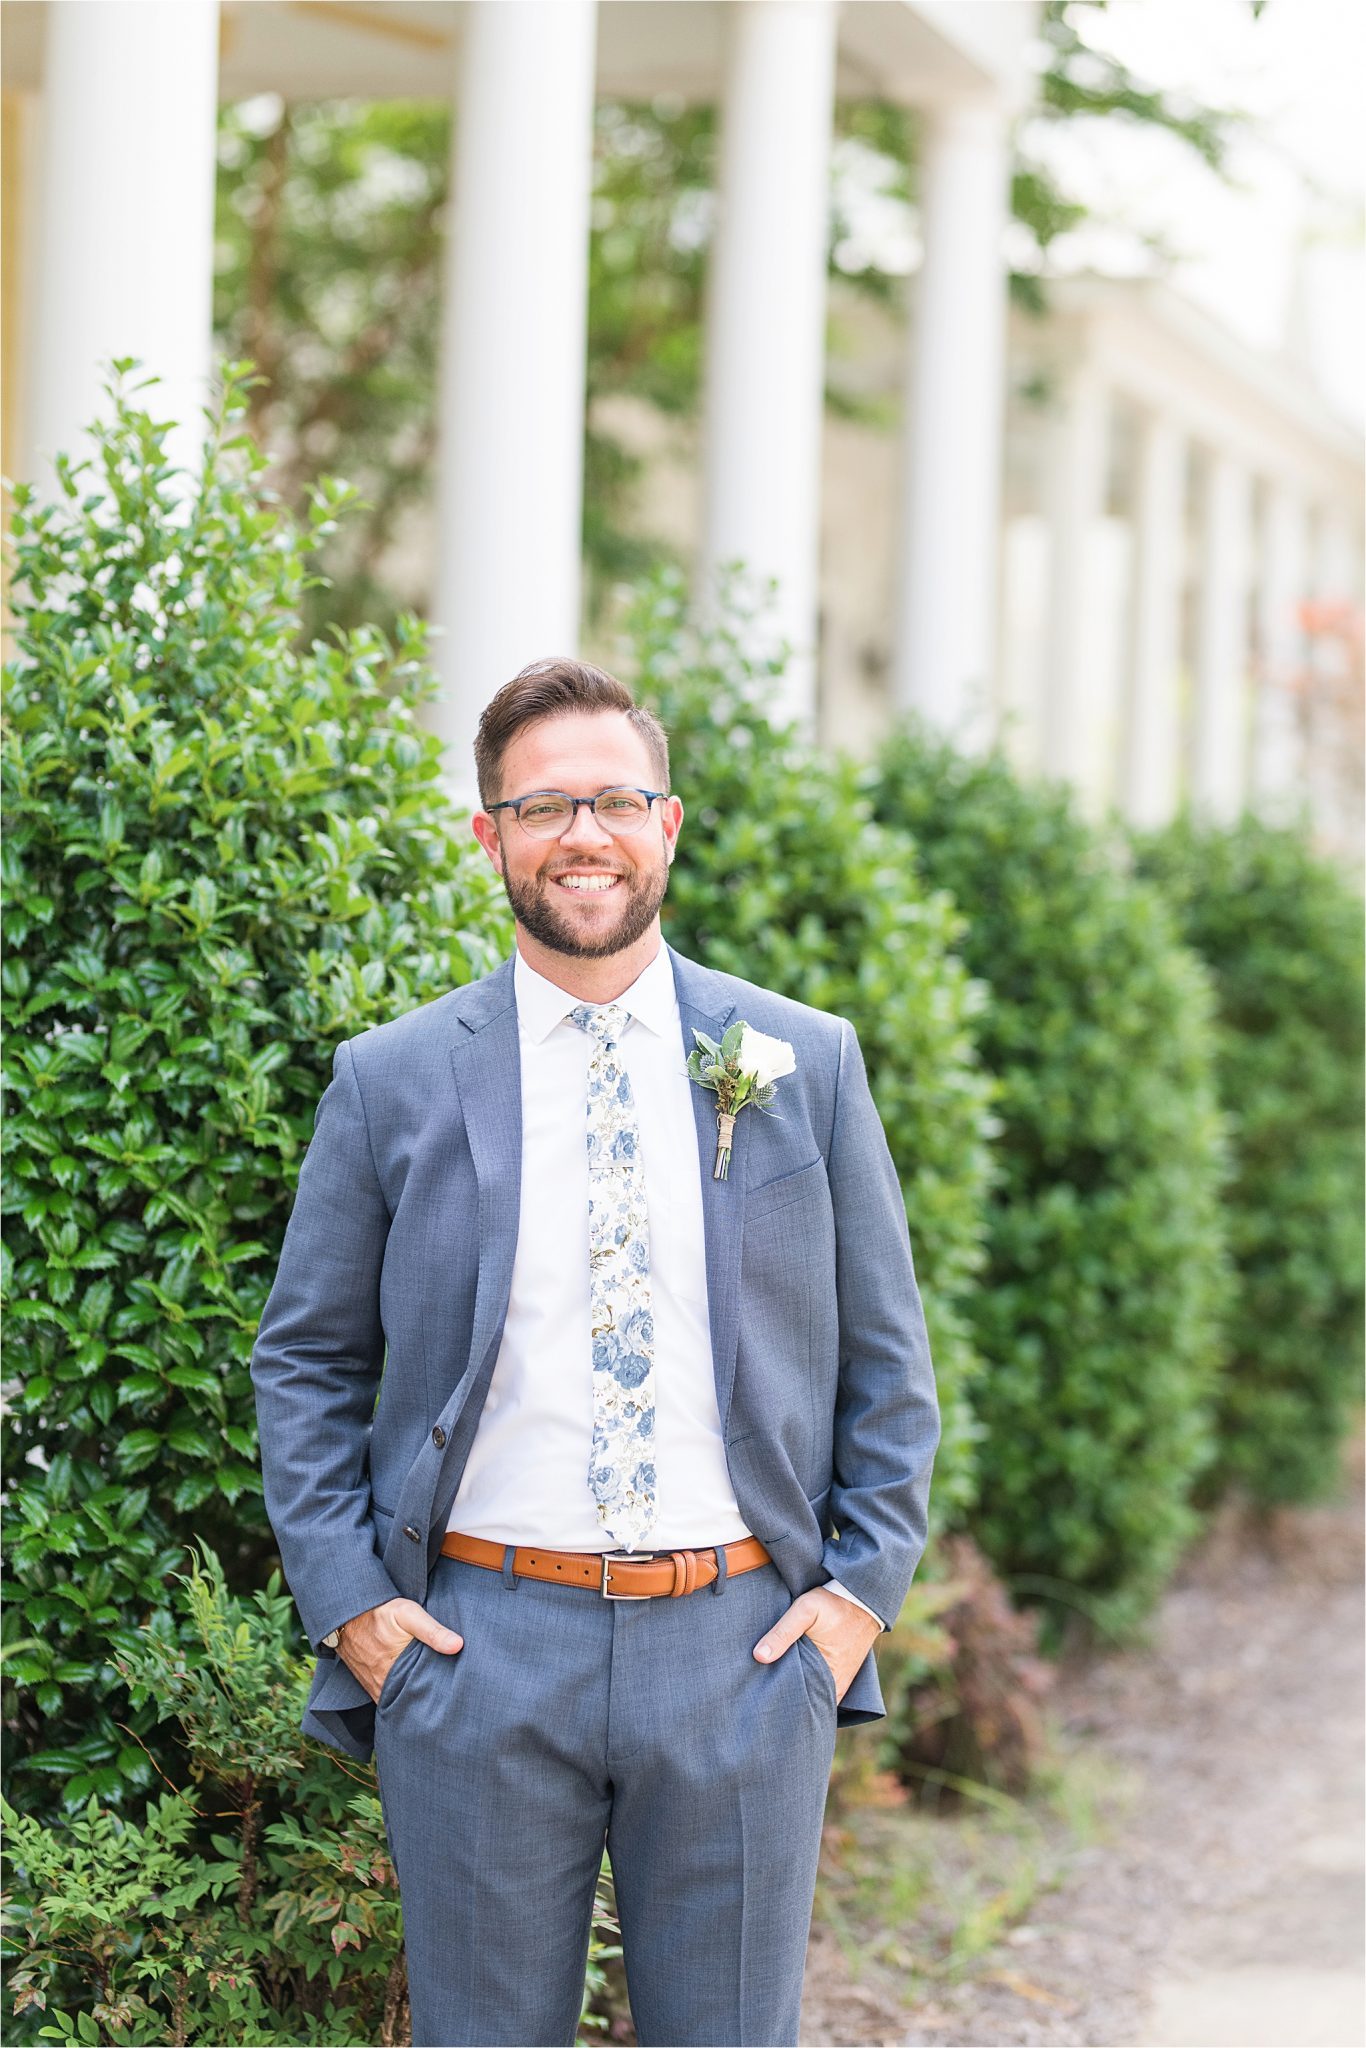 Pastel Themed Wedding-The Chapel at the Waters-Montgomery Alabama Photographer-Miles & Meredyth-Blue Themed Wedding-Groom's Tie-Groom Attire-White Boutonniere